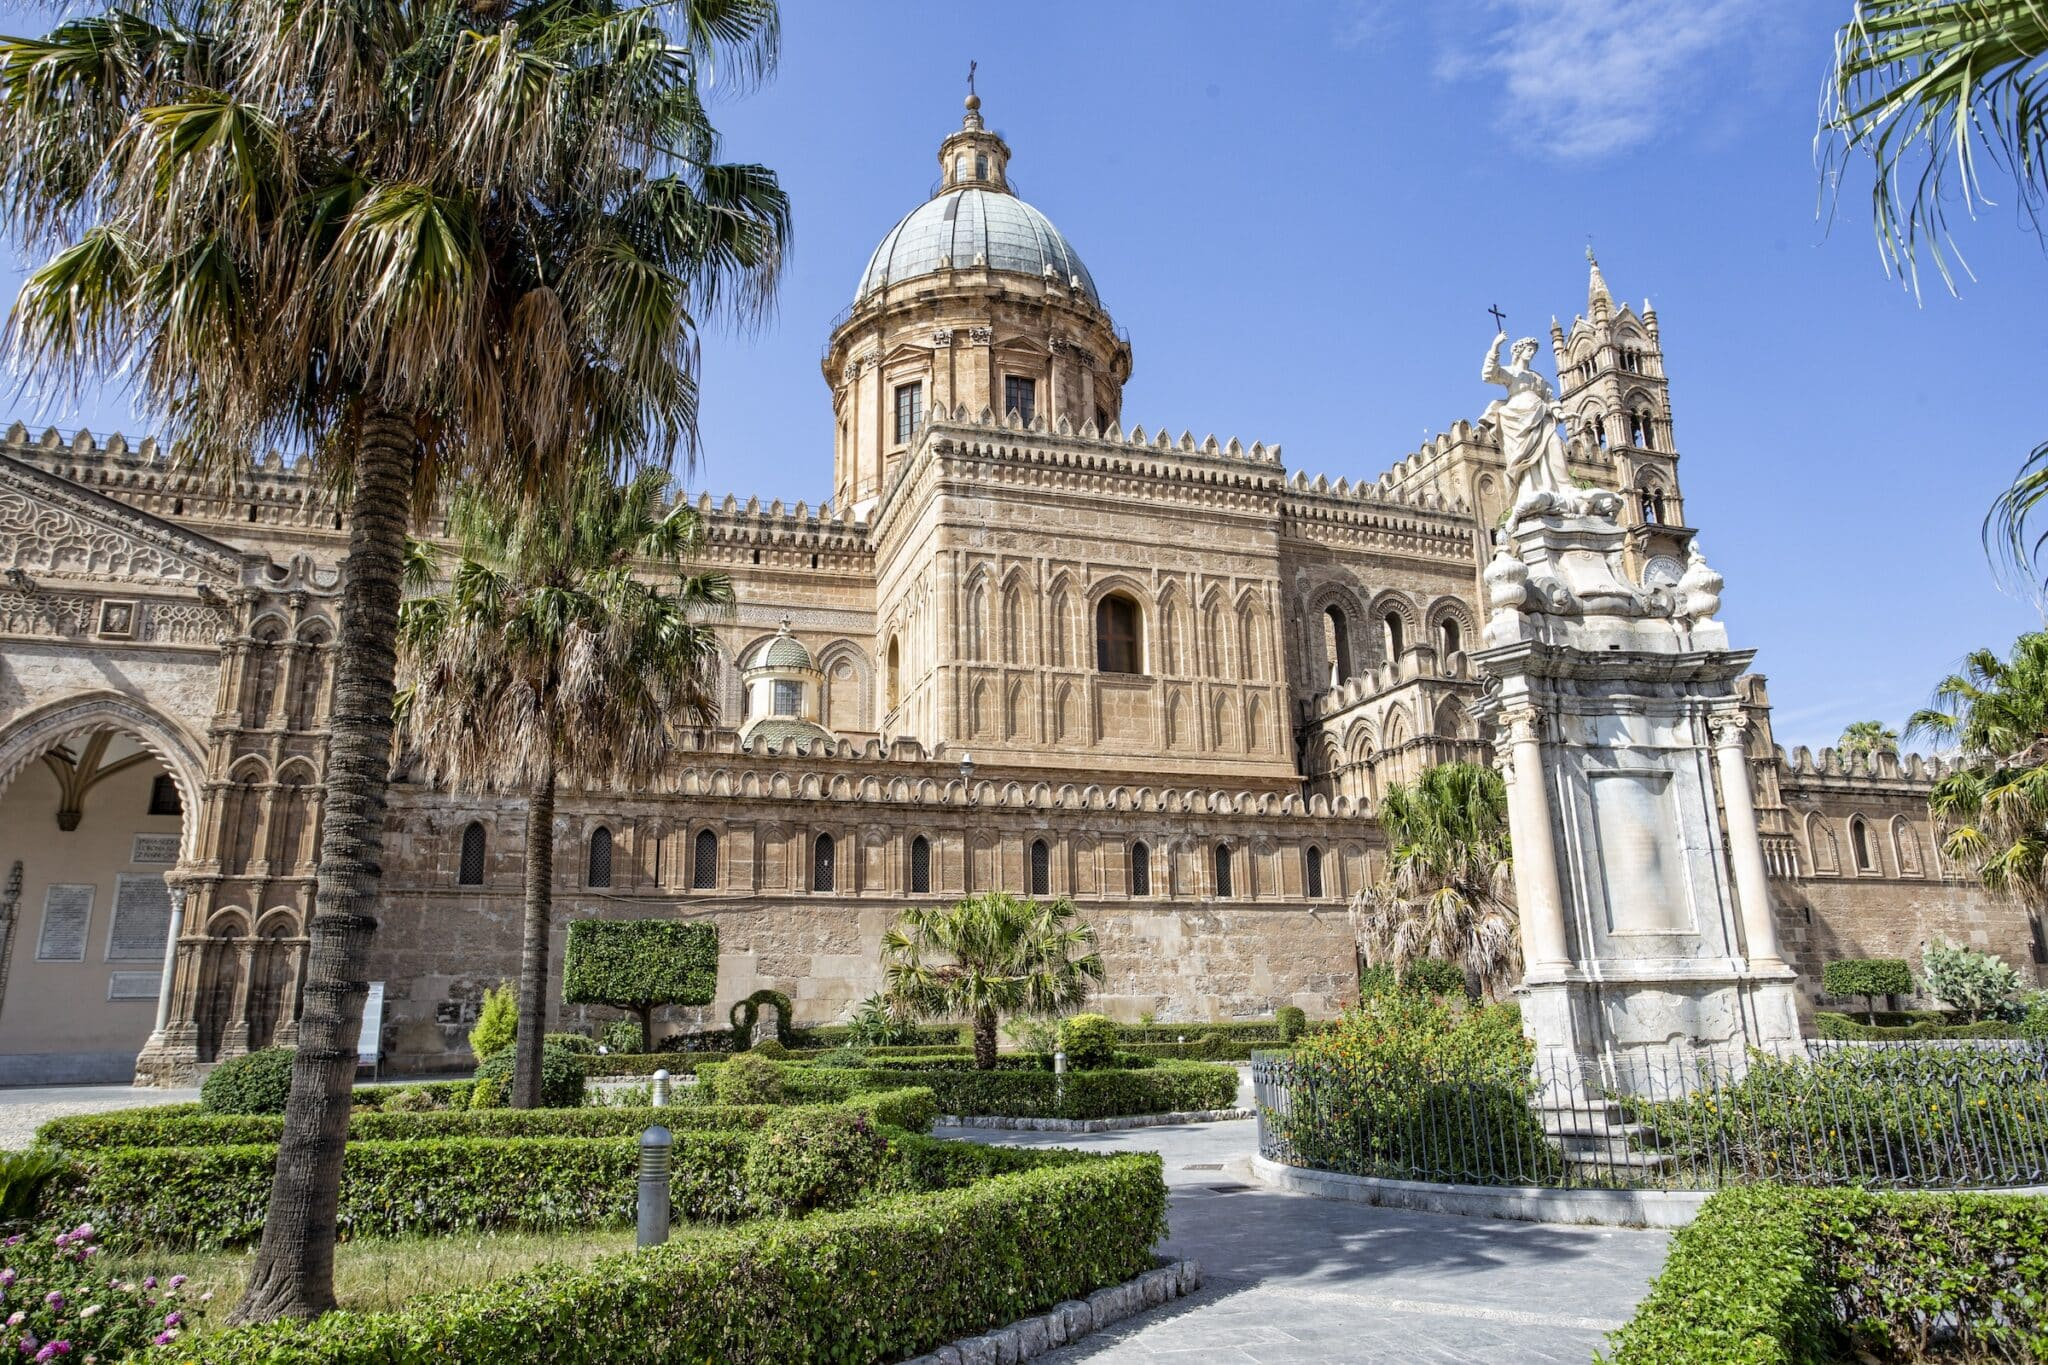 Sicily palermo cathedral